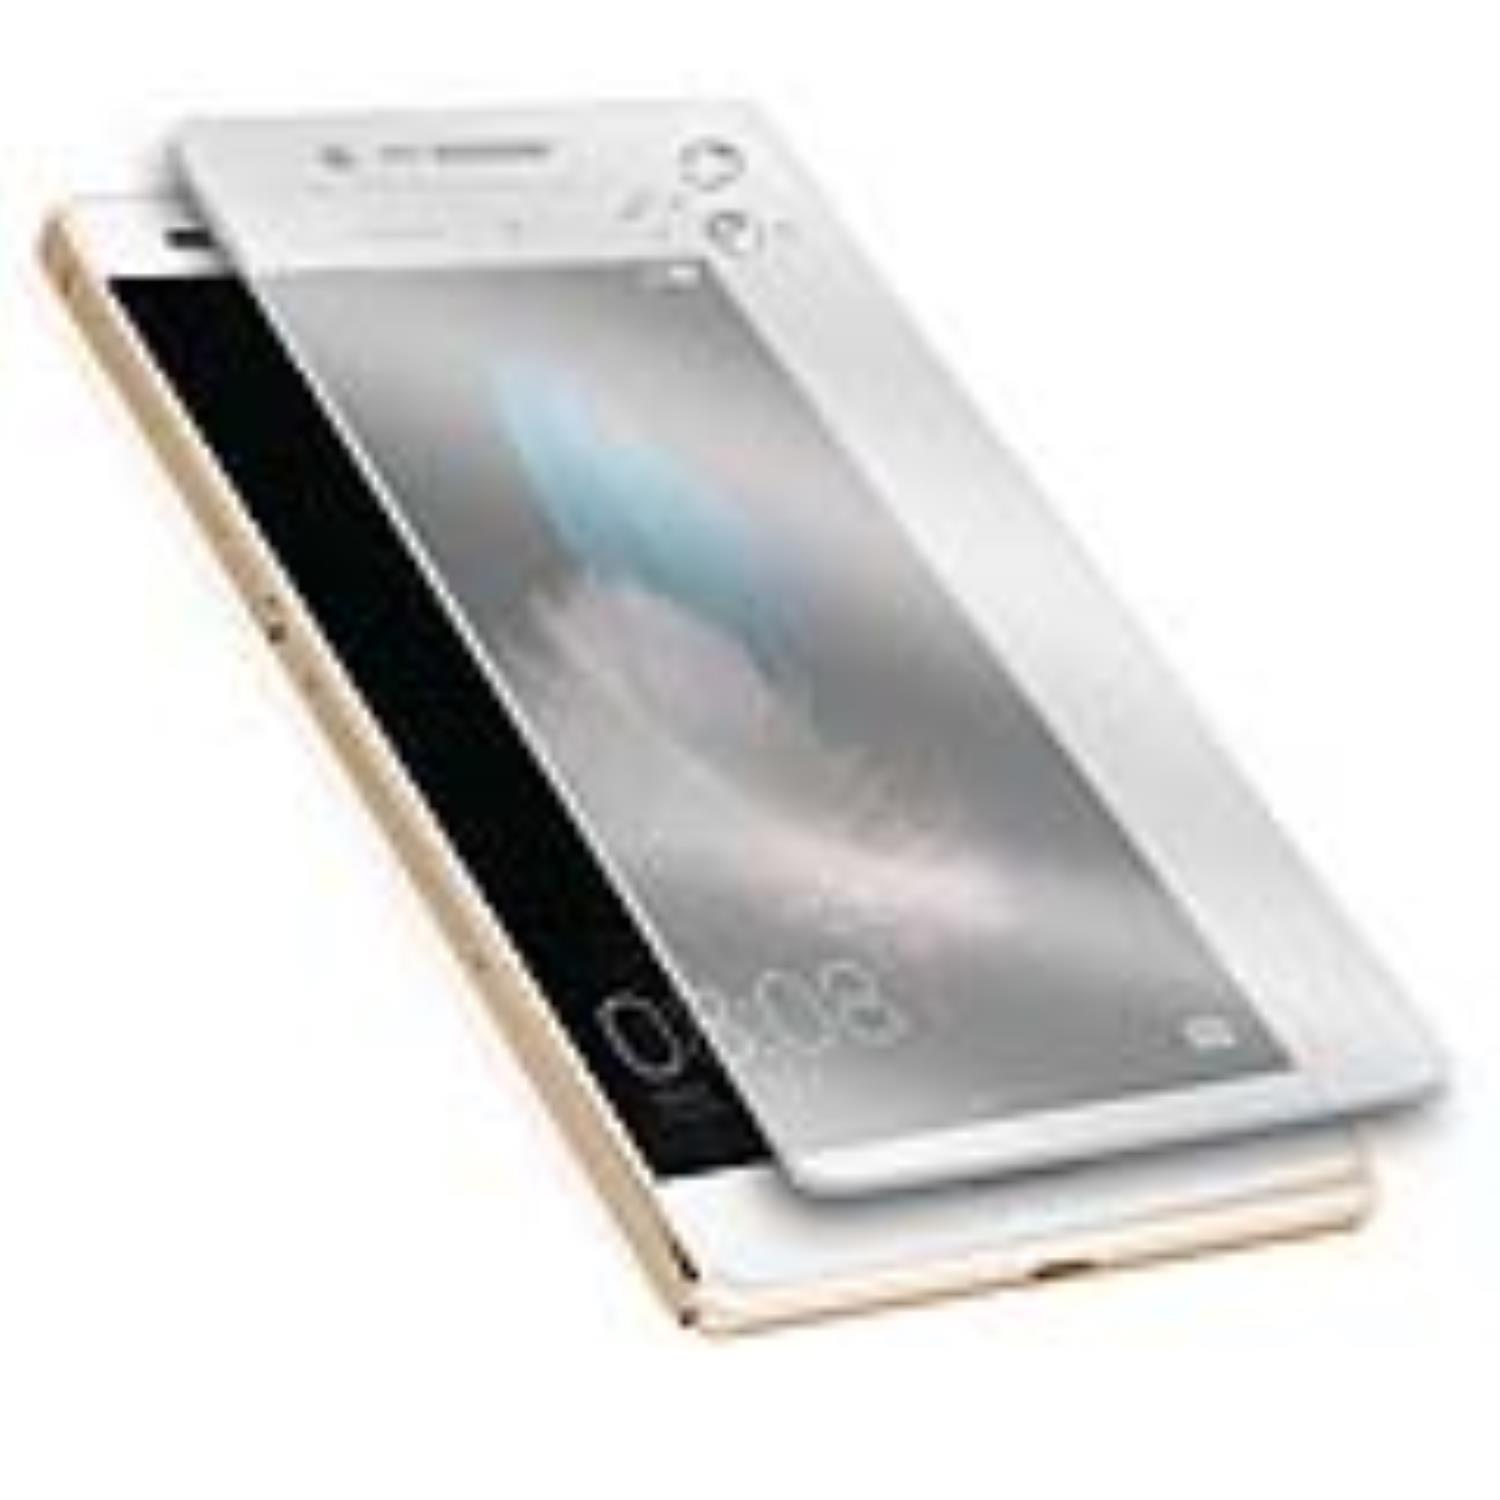 AREA AREA SCREEN PROTECTOR GLASS PER HUAWEI P8 LITE